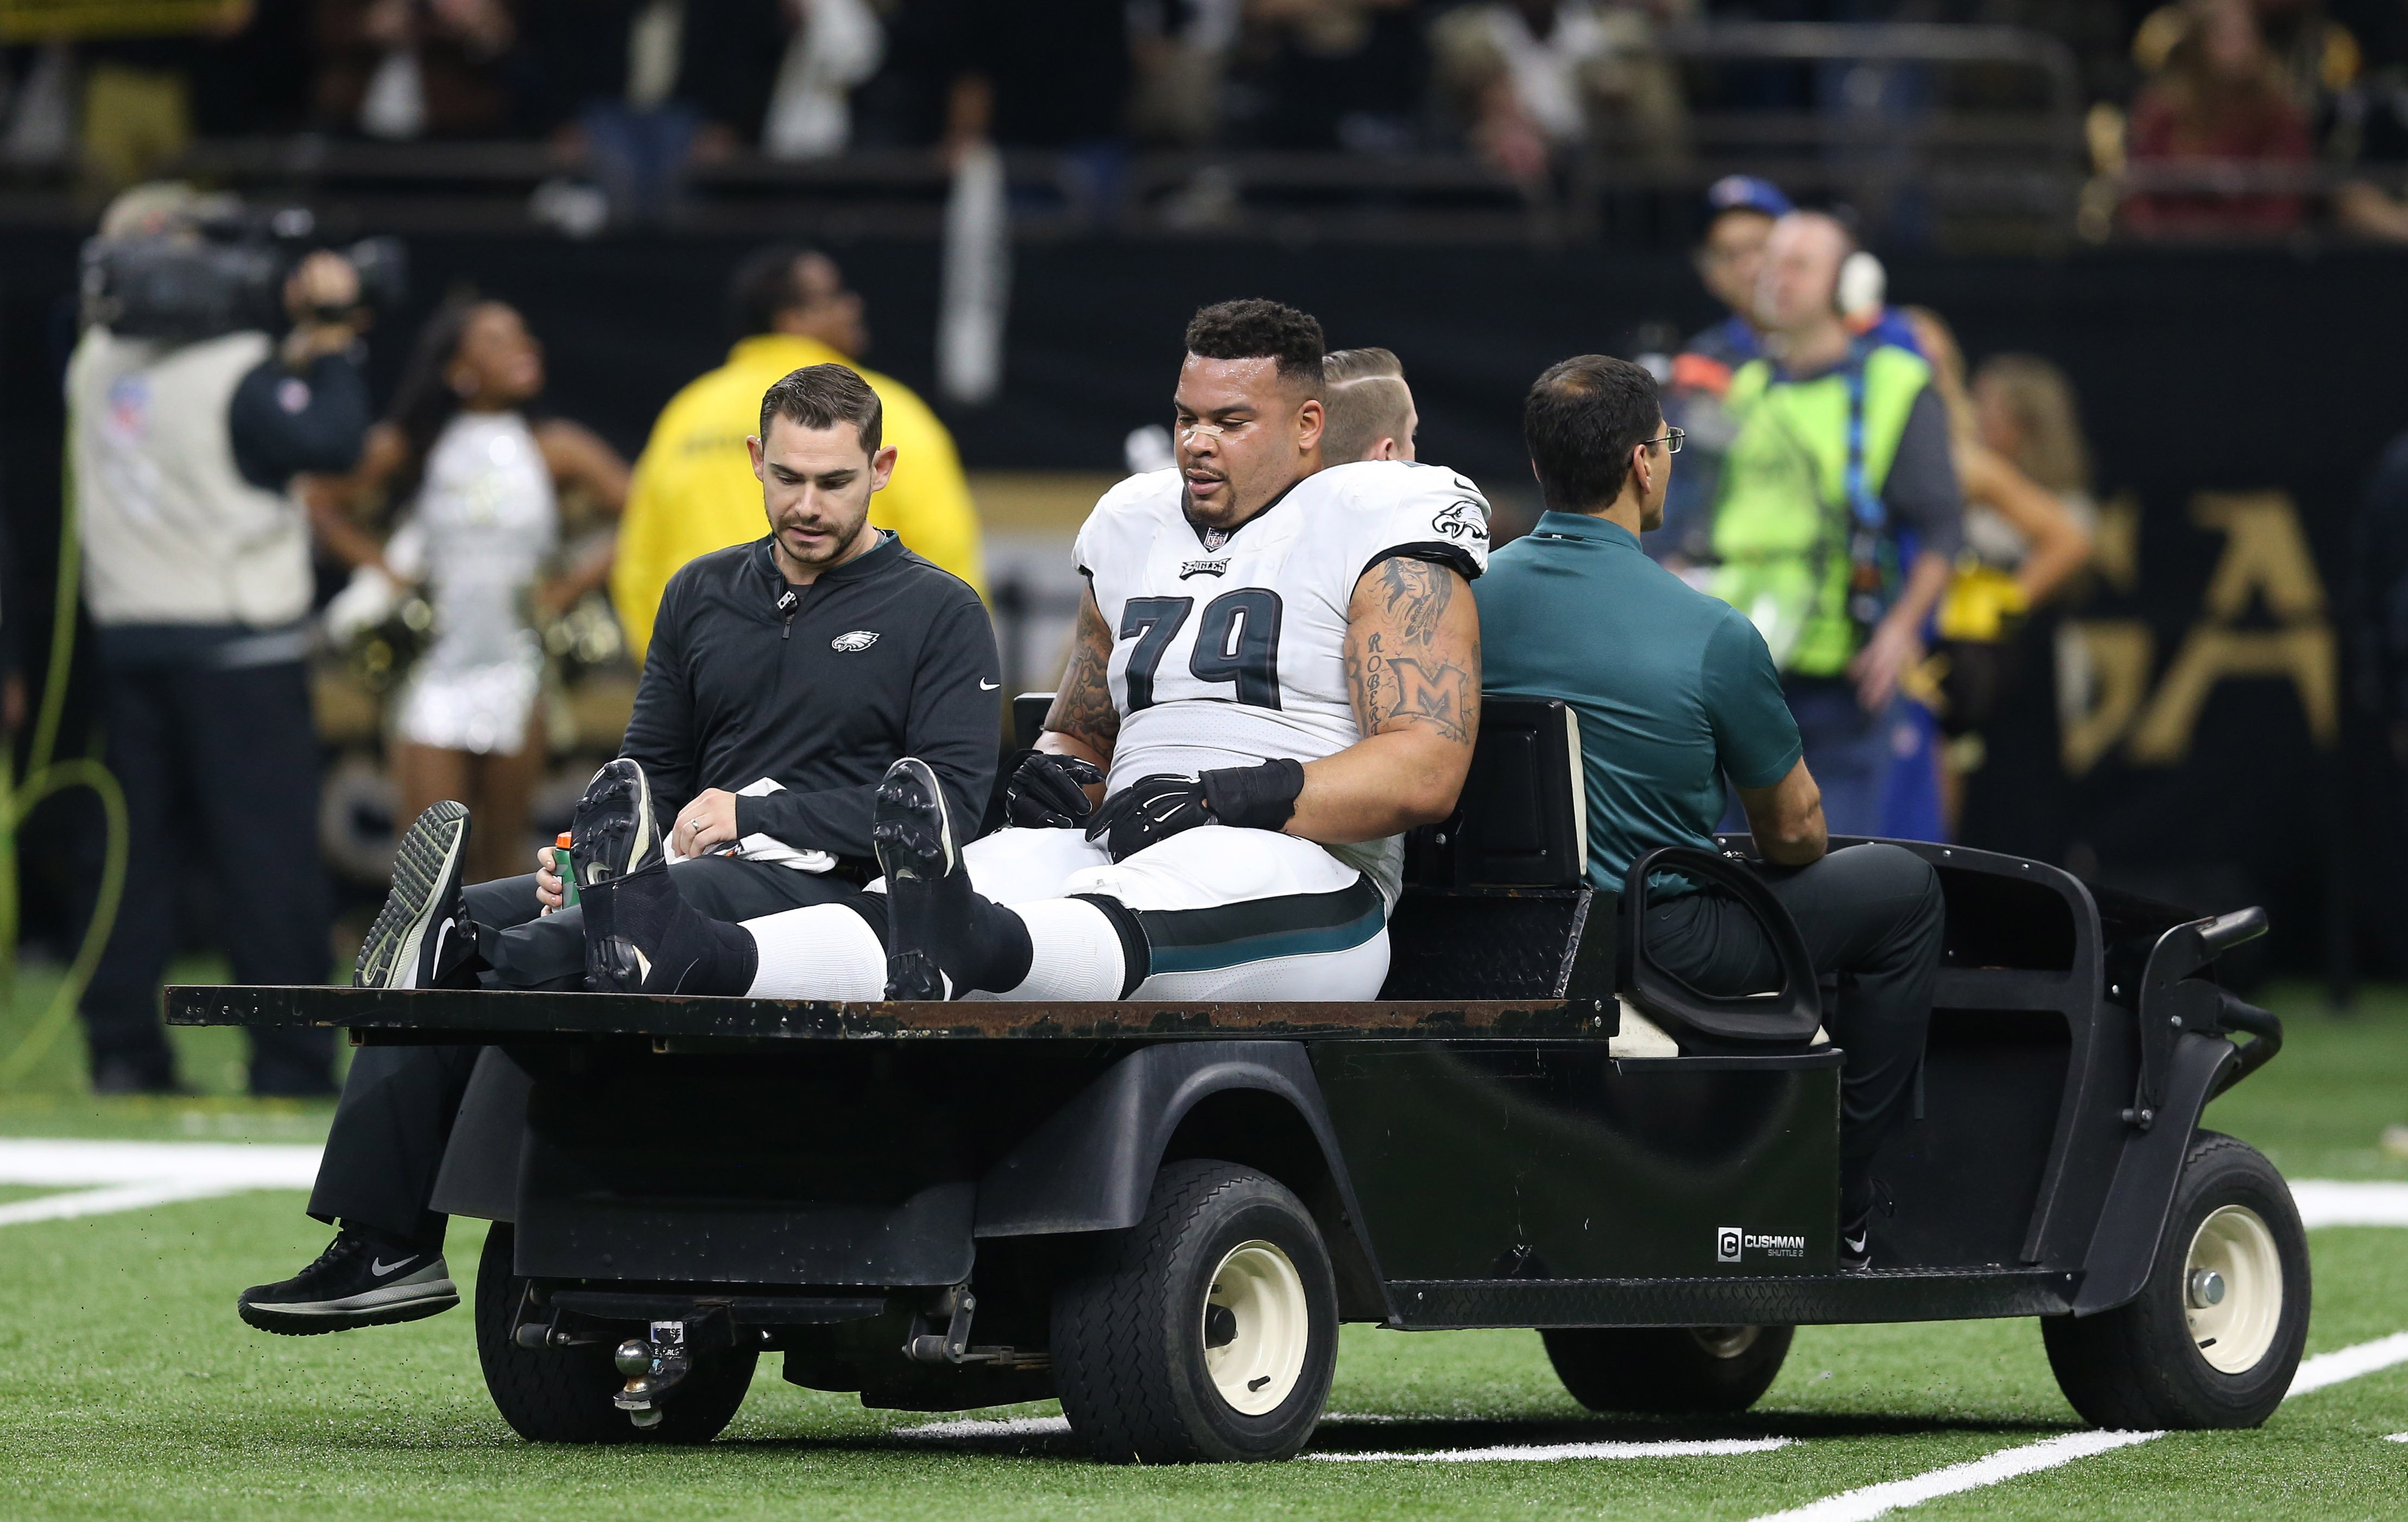 Eagles offensive line will look much different in 2019